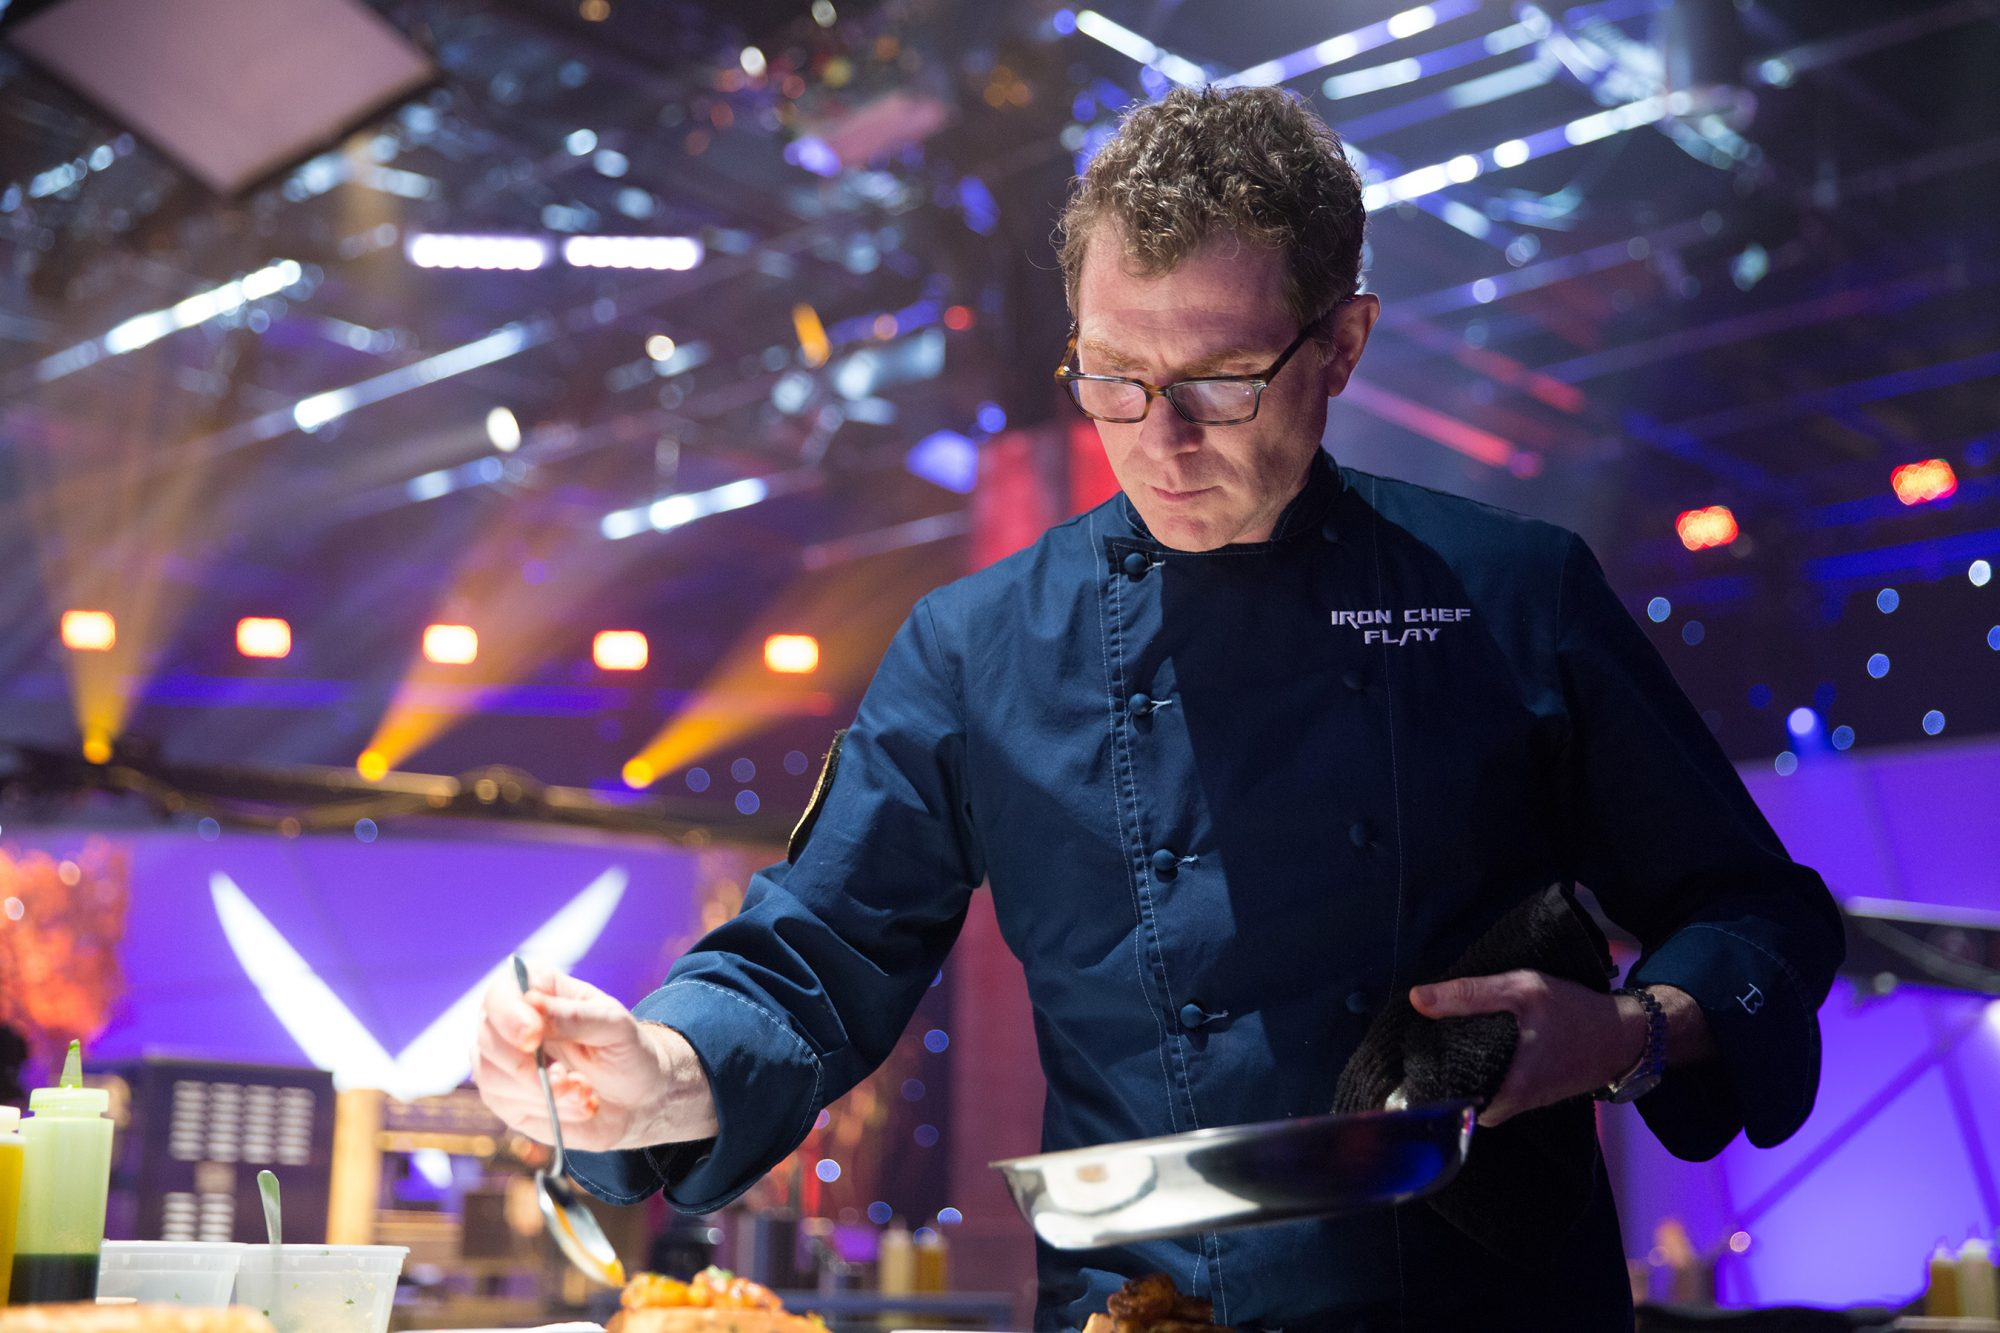 ironchefbobbyflay-1506707853124-7-HR